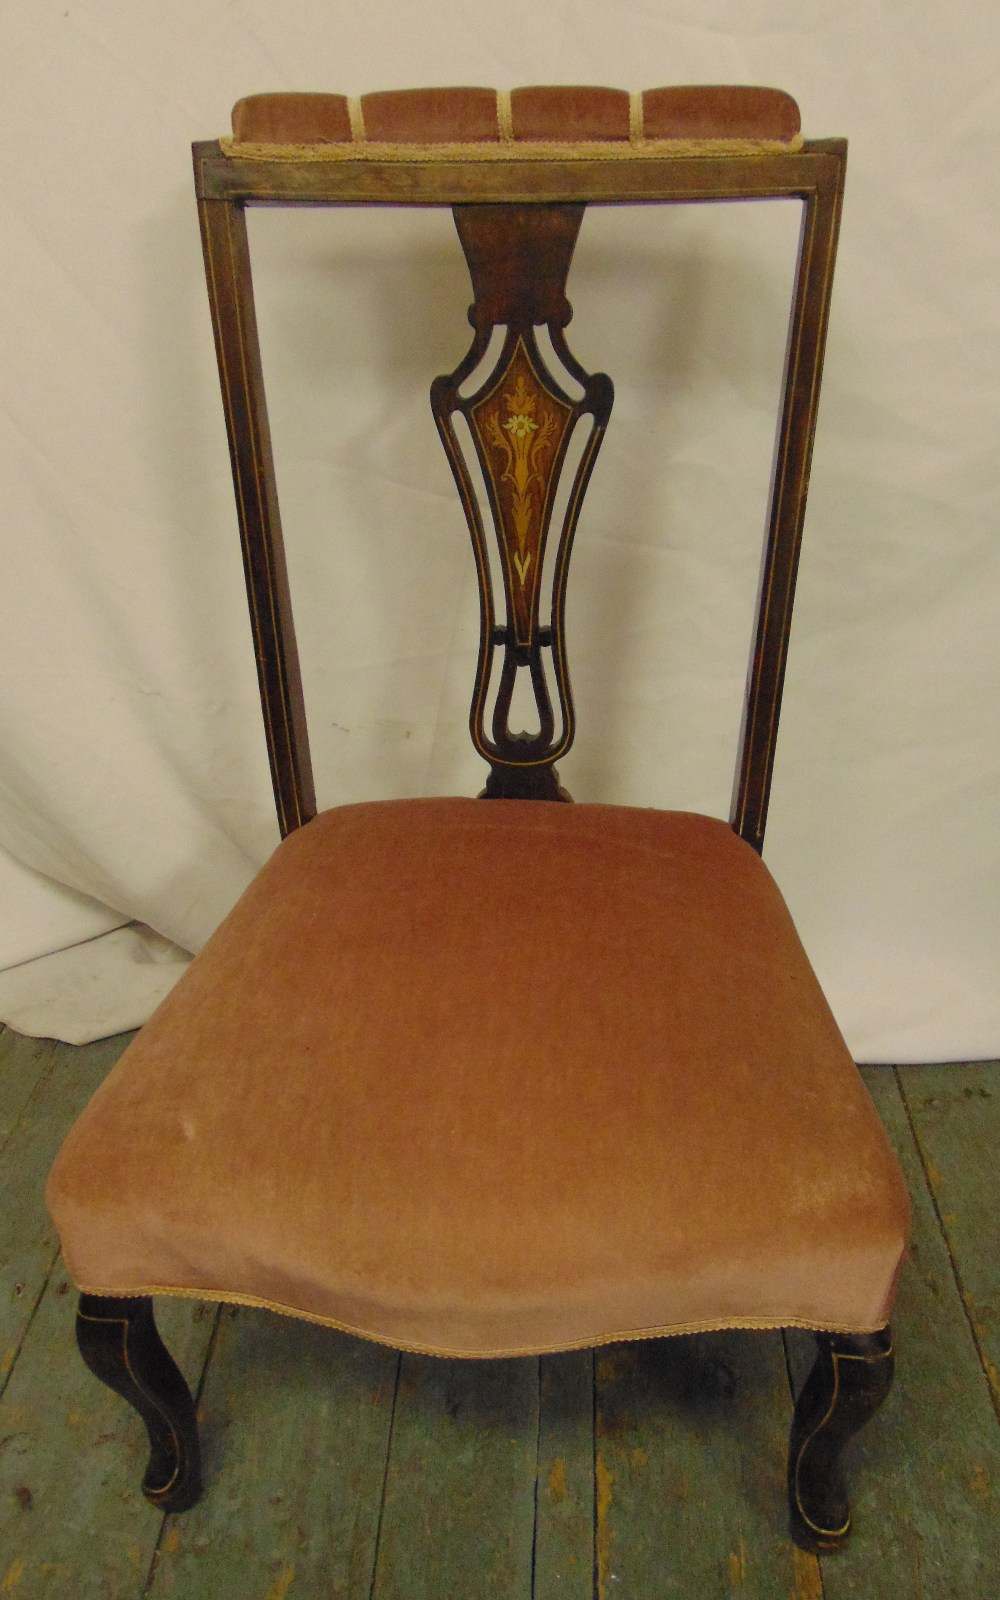 Lot 35 - An Edwardian upholstered nursing chair with satinwood stringing, on four scroll legs